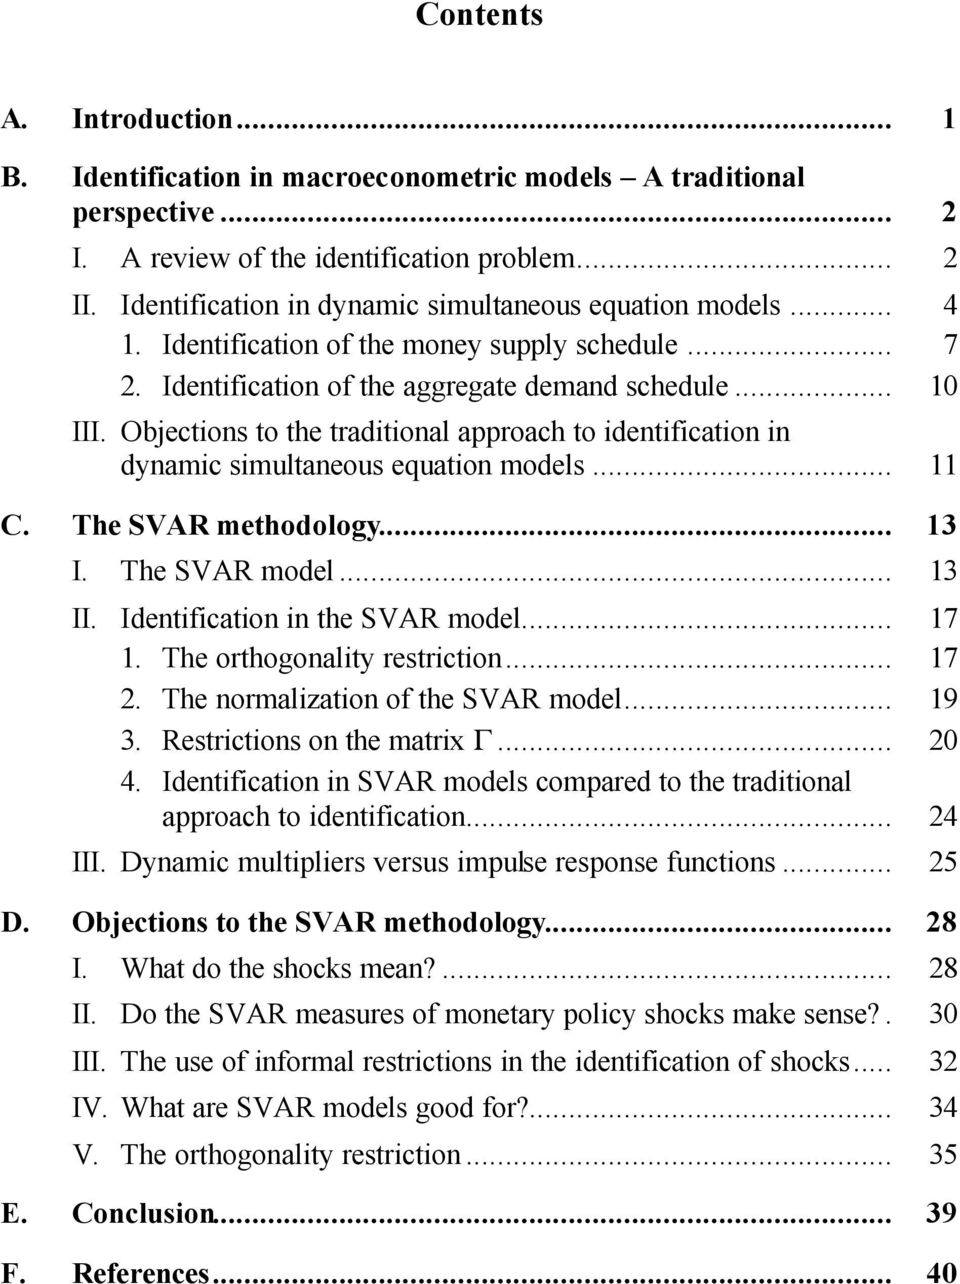 Objections to the traditional approach to identification in dynamic simultaneous equation models... 11 C. The SVAR methodology... 13 I. The SVAR model... 13 II. Identification in the SVAR model... 17 1.